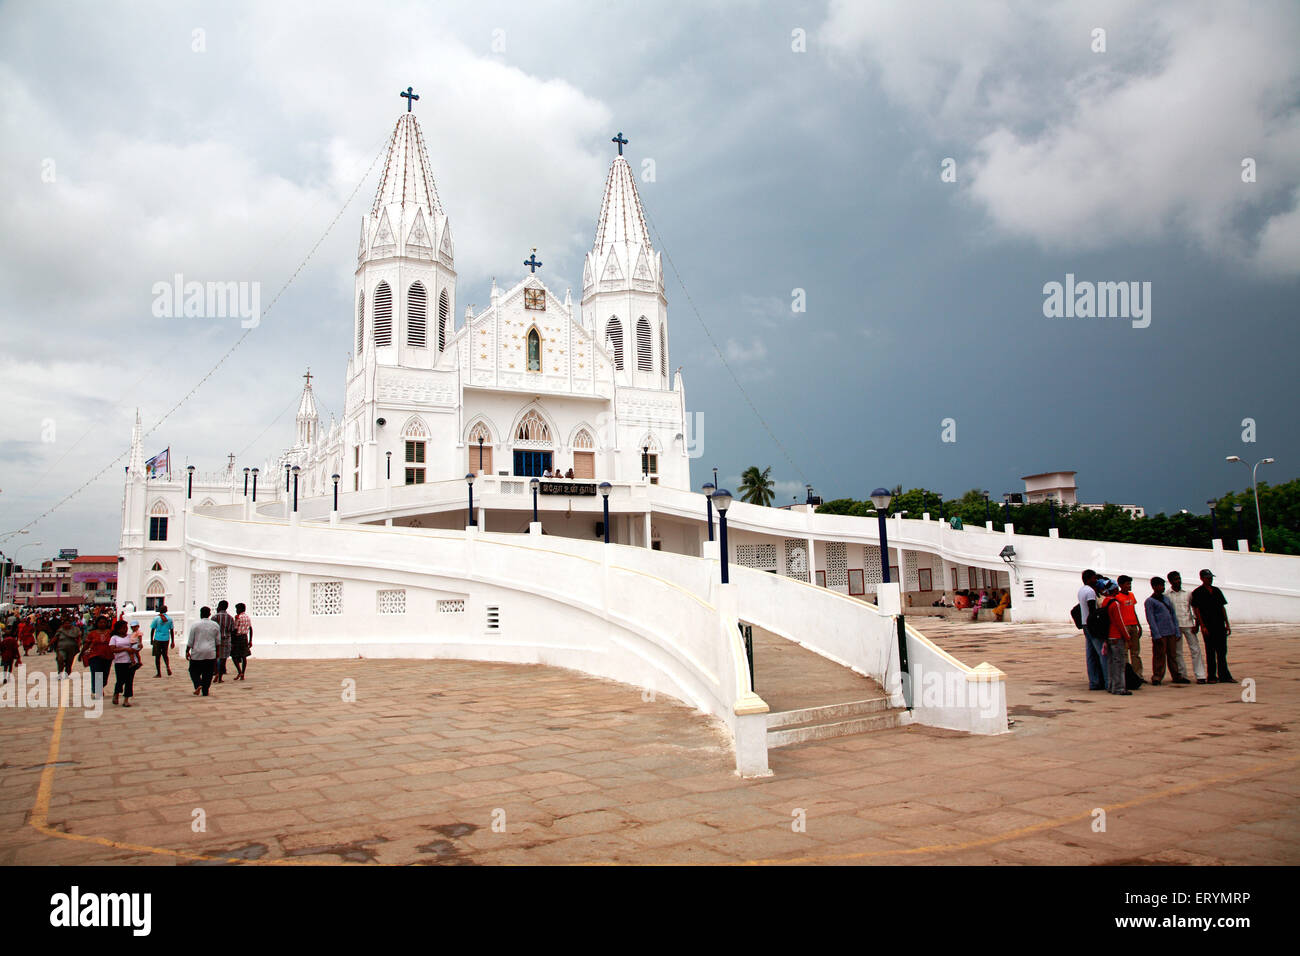 Church of our lady of good health called our lady of vailankanni ; Vailankanni  Velanganni ; Nagappattinam Stock Photo